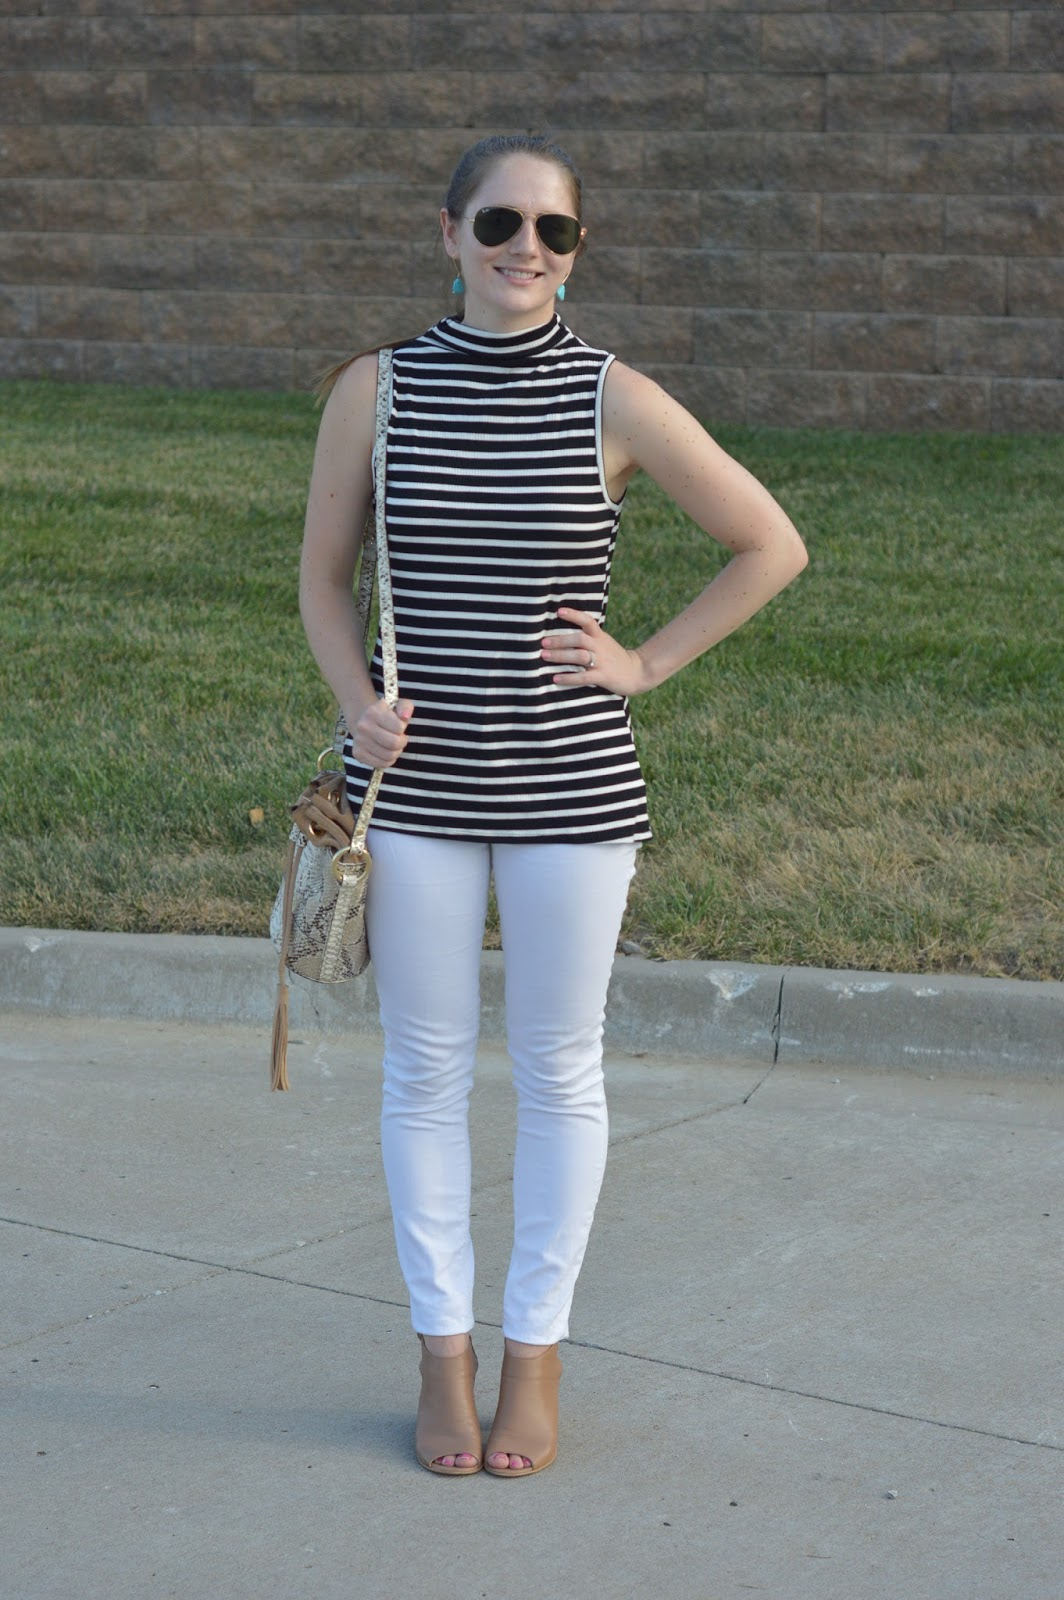 white jeans with peep toe booties and a striped top | what to wear with peep toed booties | summer outfit ideas | pattern mixing outfit ideas | how to mix patterns | snakeskin bucket bag | striped mock neck tank top | a memory of us